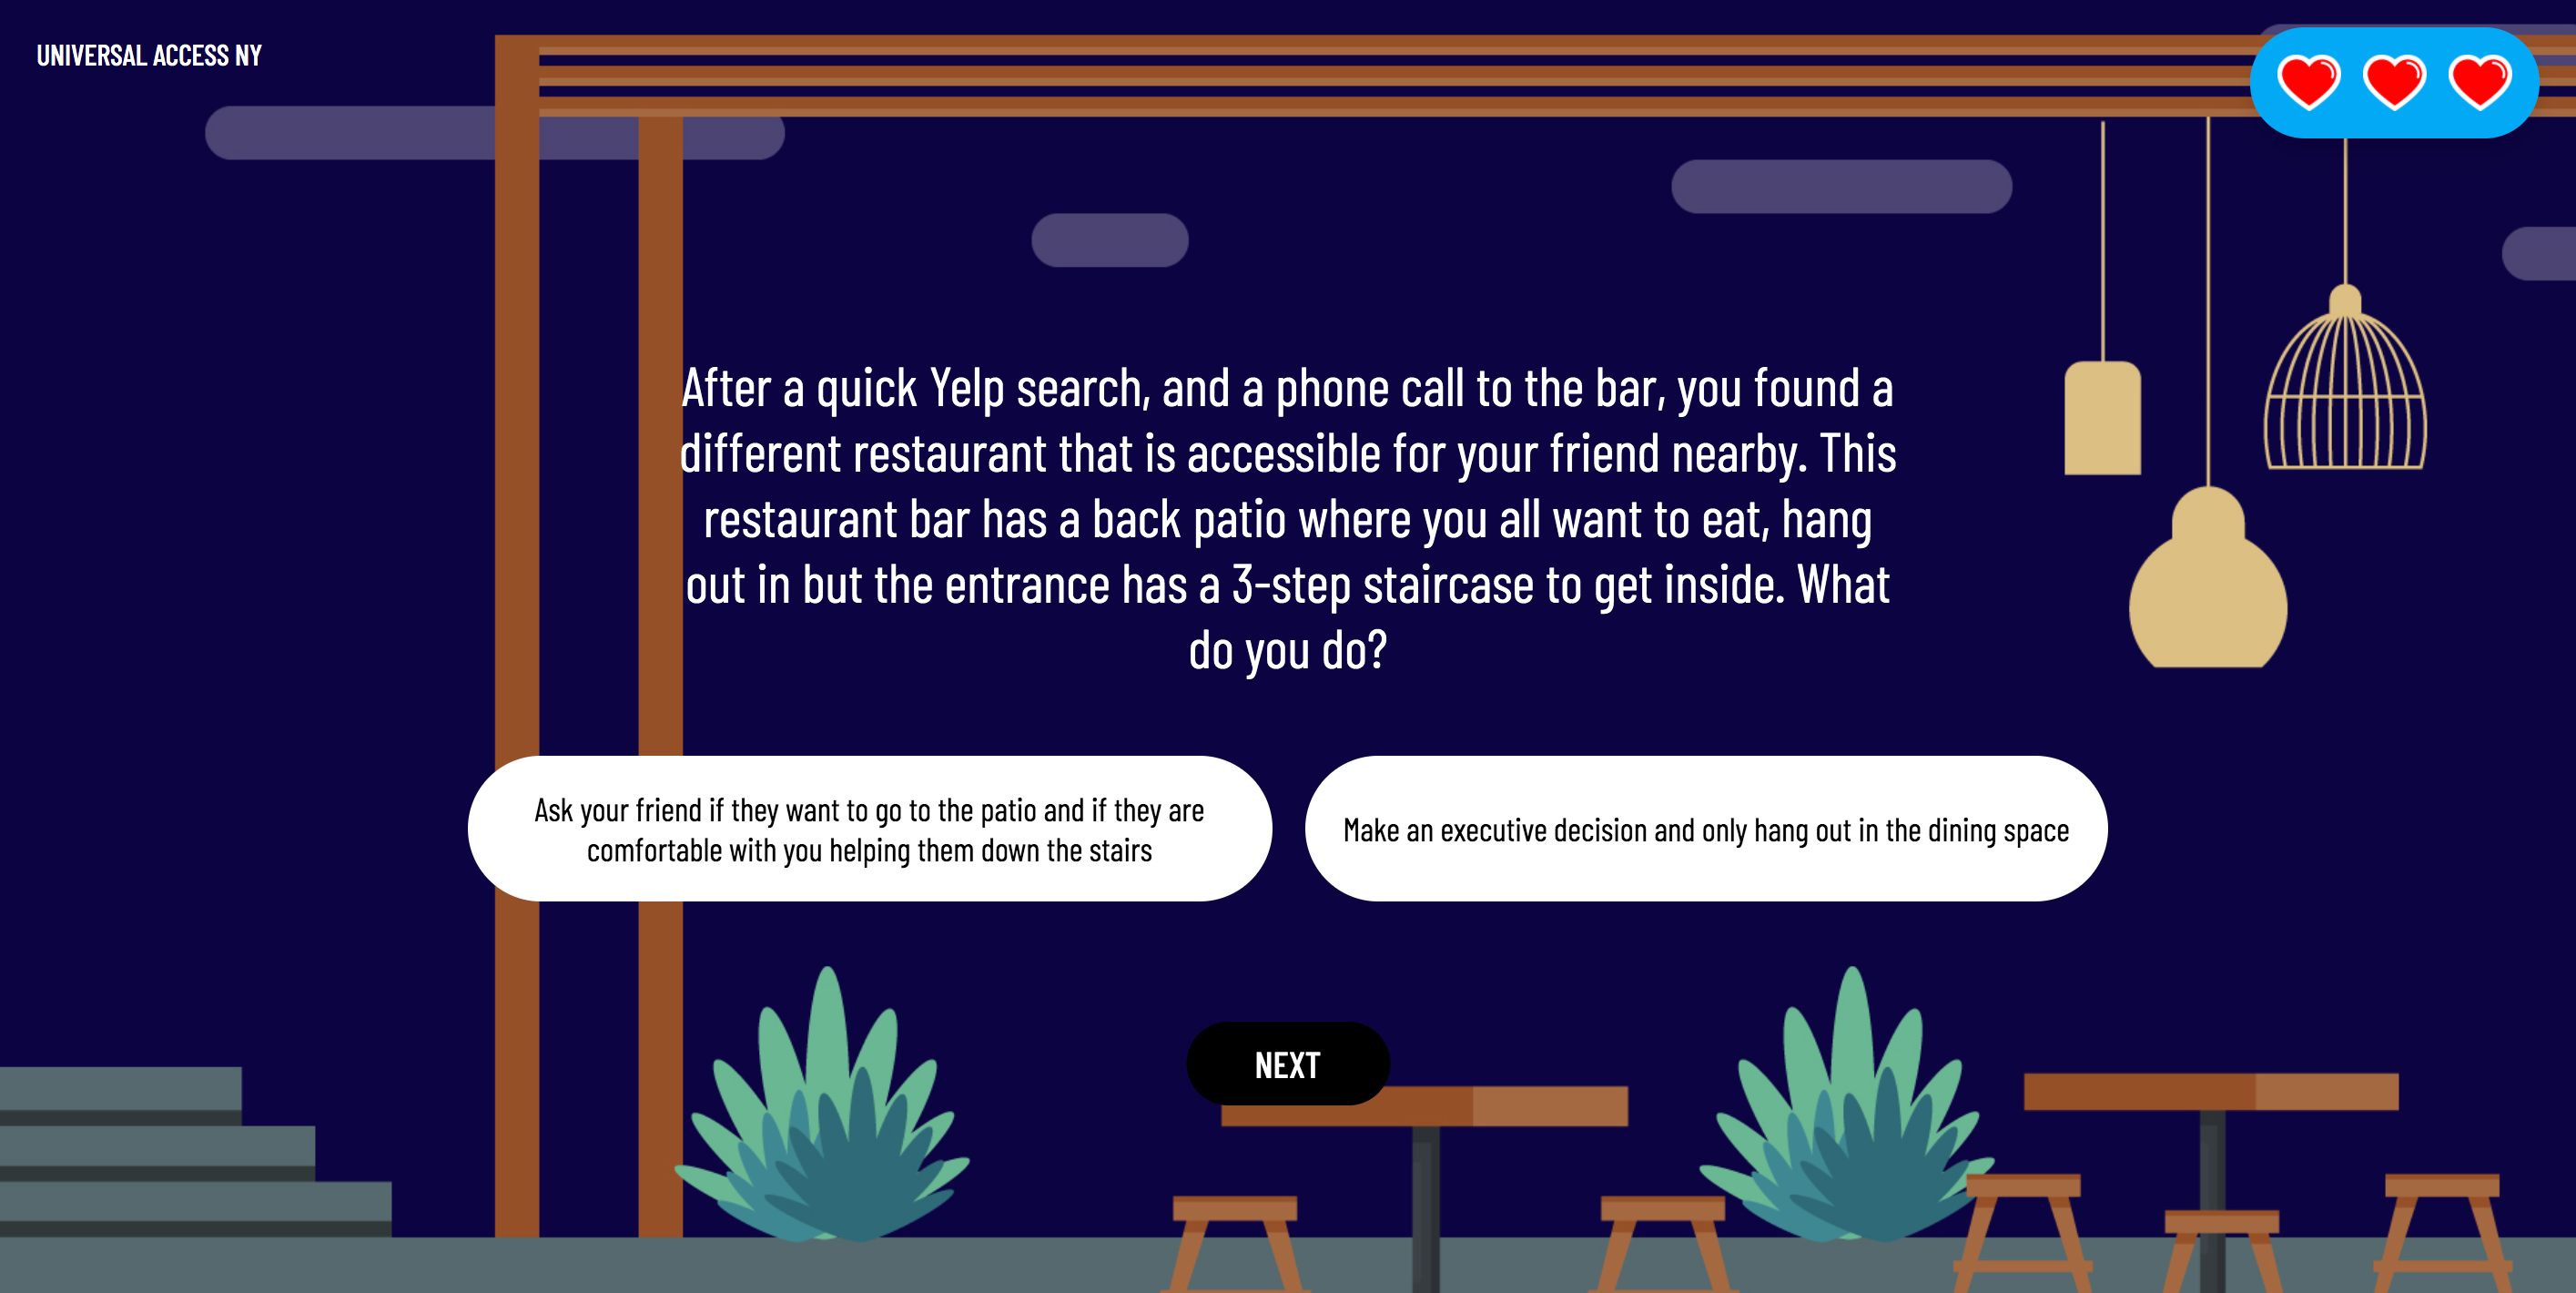 A question of the narrative game. The background is a illustrated graphic to mimic an outdoor patio with tables and plants.